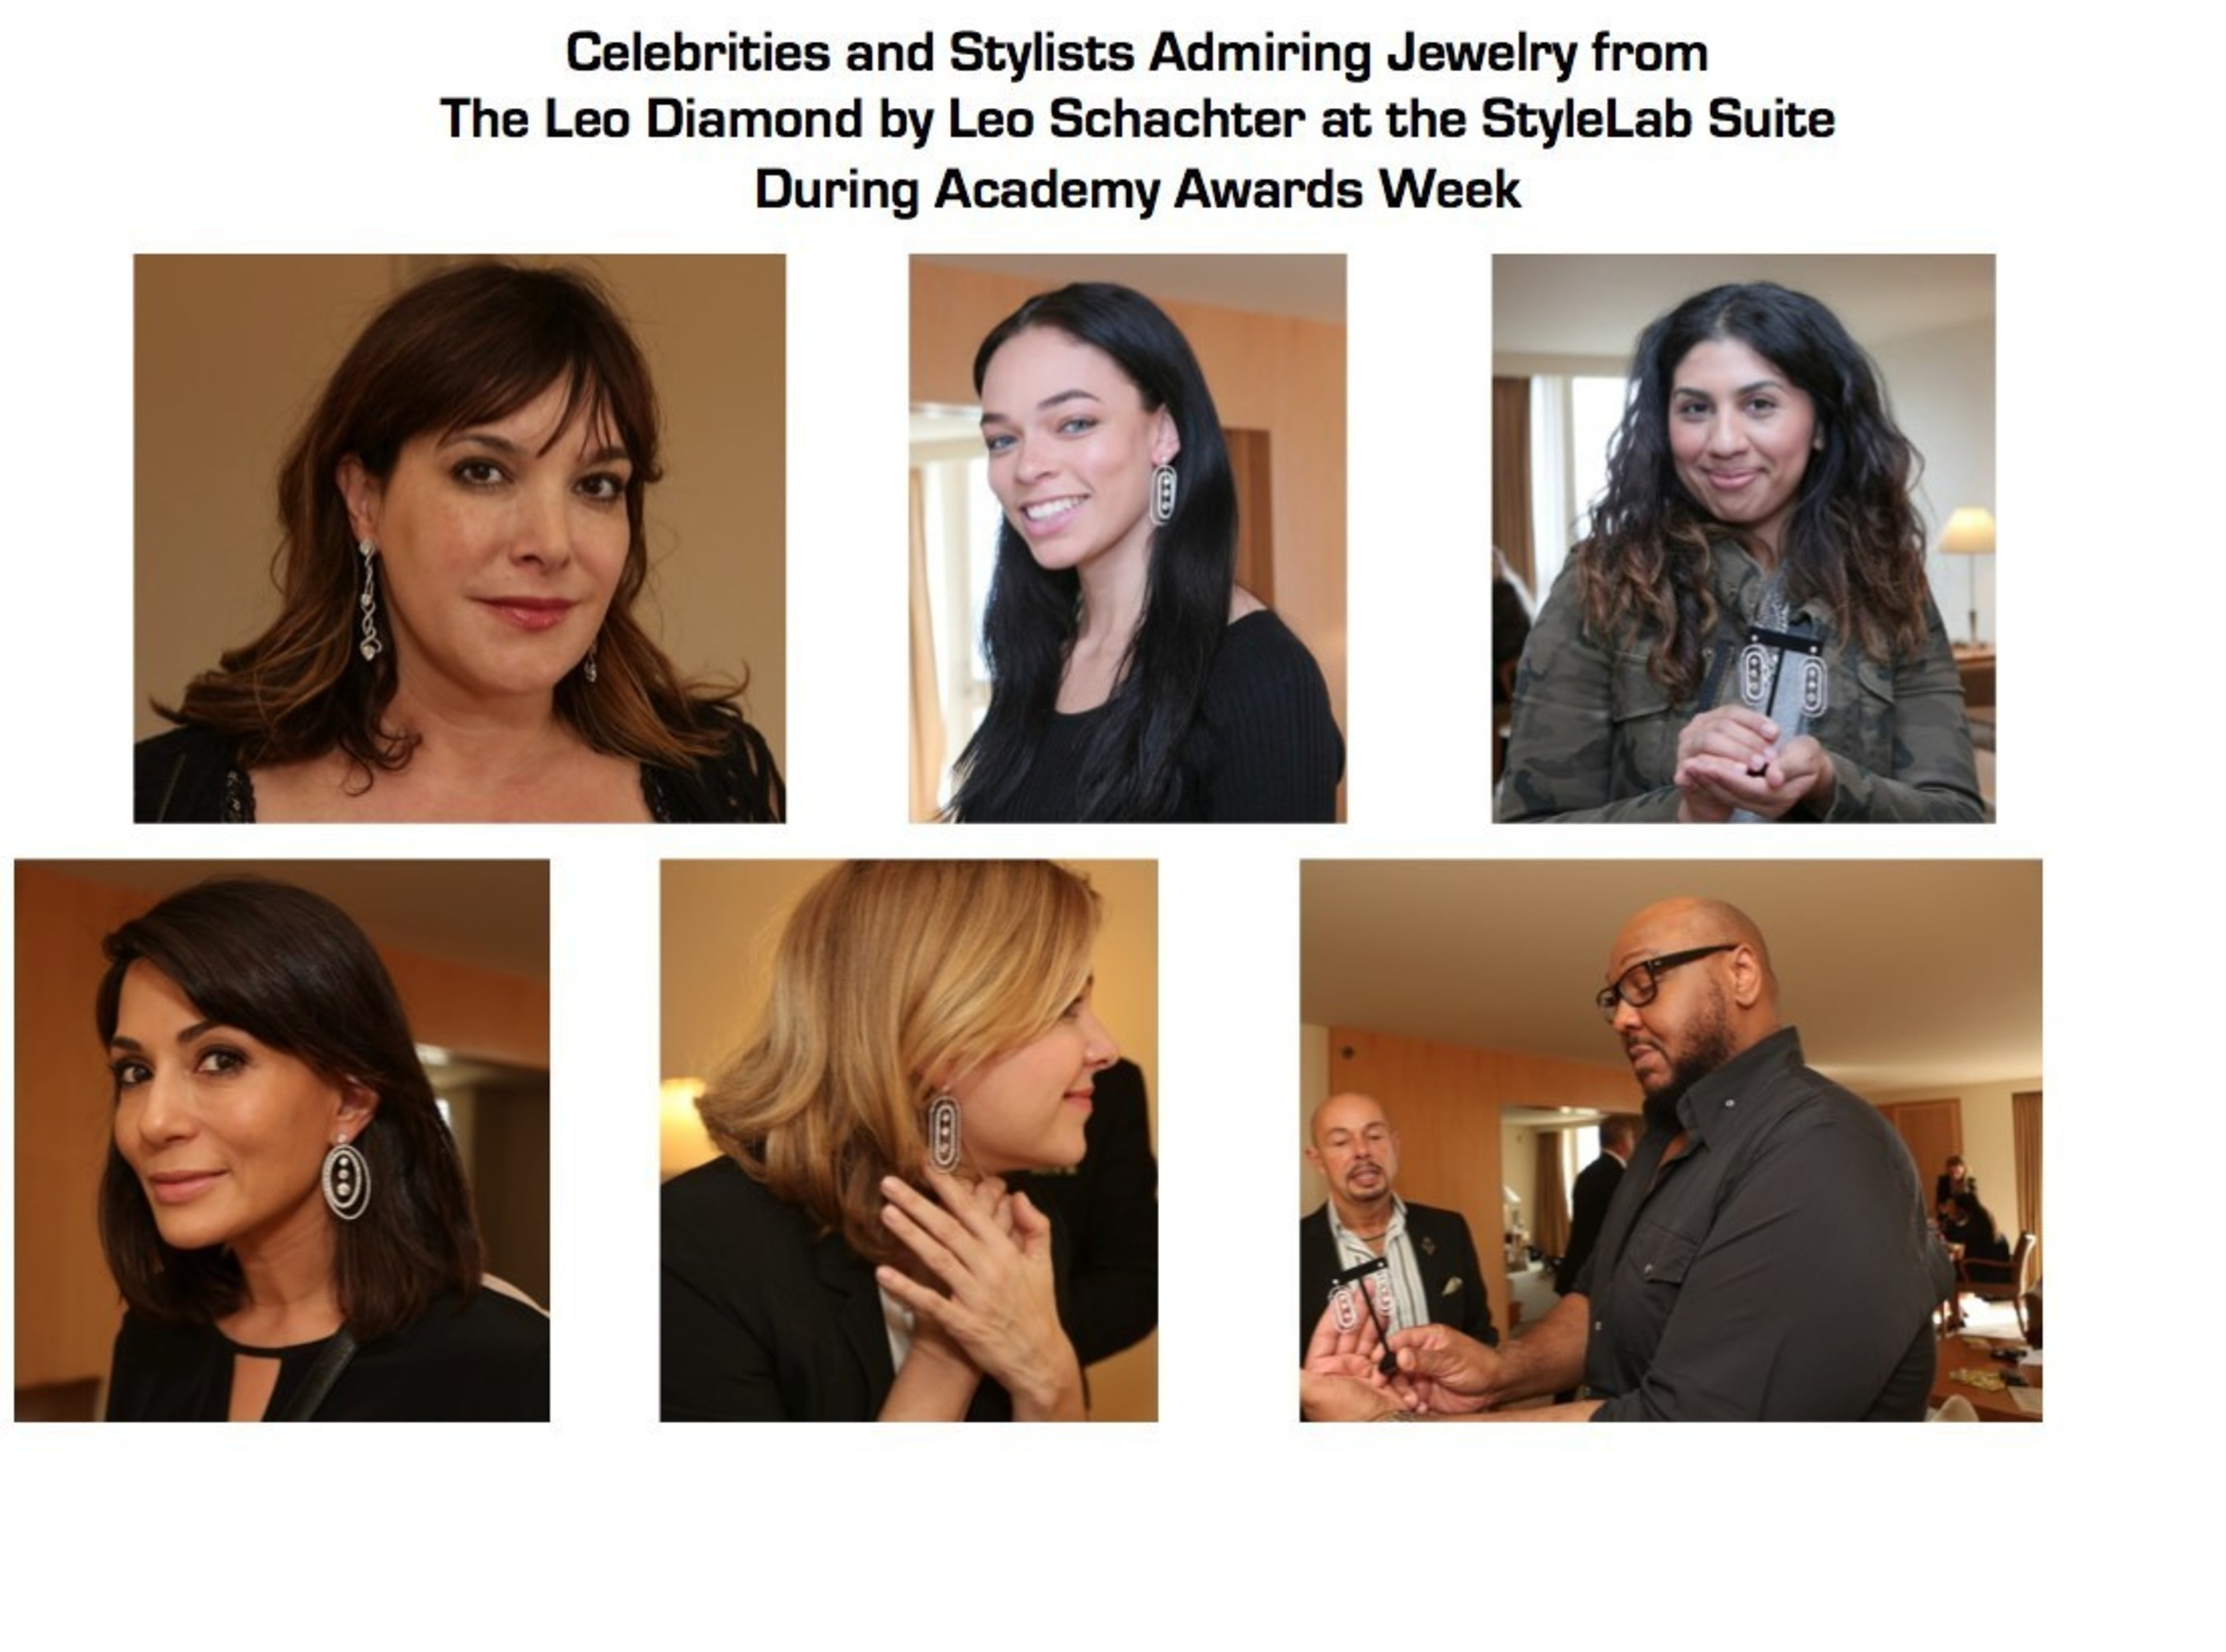 Celebrities And Their Stylists Previewed Jewelry From The Leo Diamond By Leo Schachter At StyleLab's Suite During Academy Awards Week